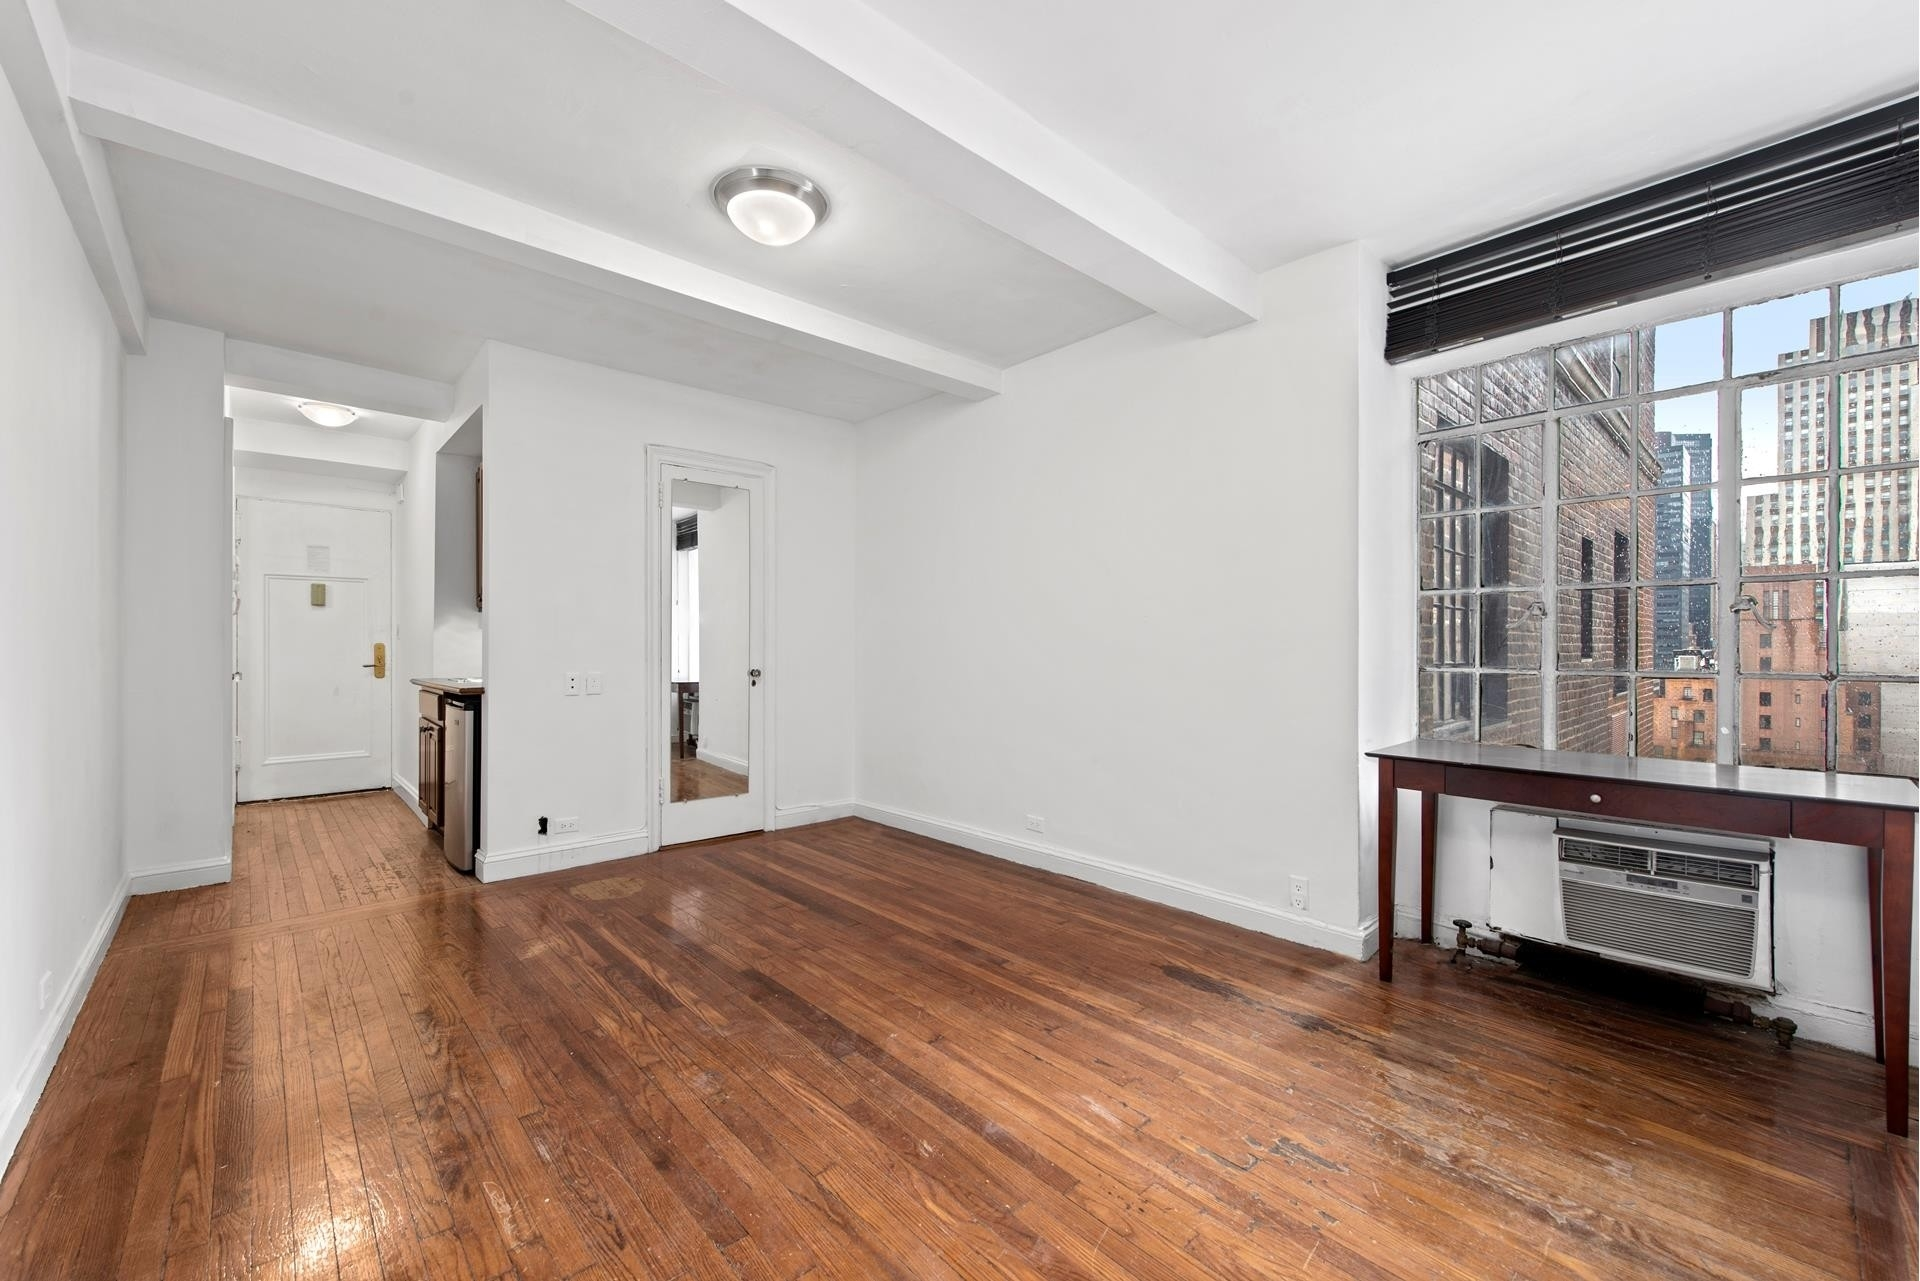 Co-op Properties for Sale at TUDOR TOWER, 25 Tudor City Pl, 2017 Murray Hill, New York, NY 10017